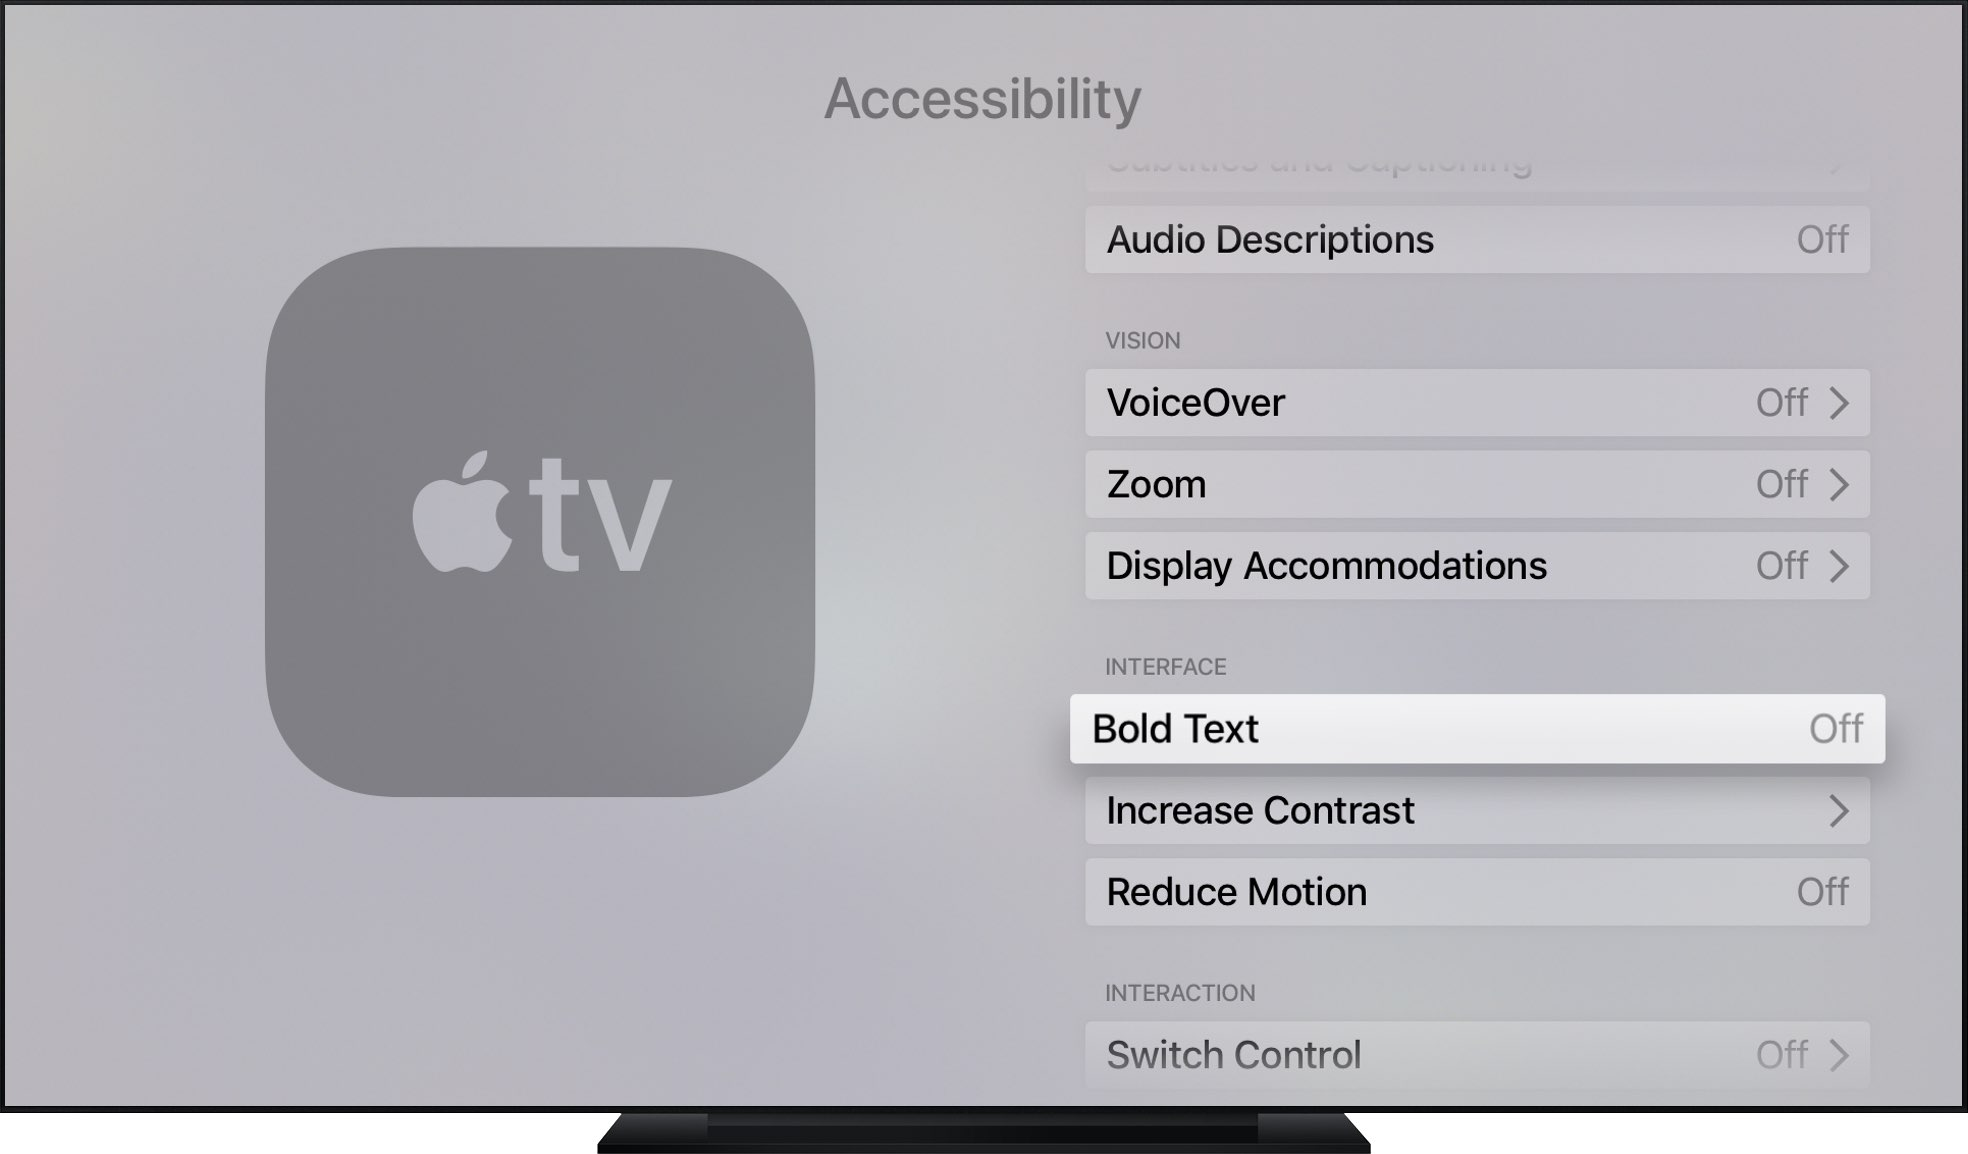 How to enable bold text throughout the Apple TV interface